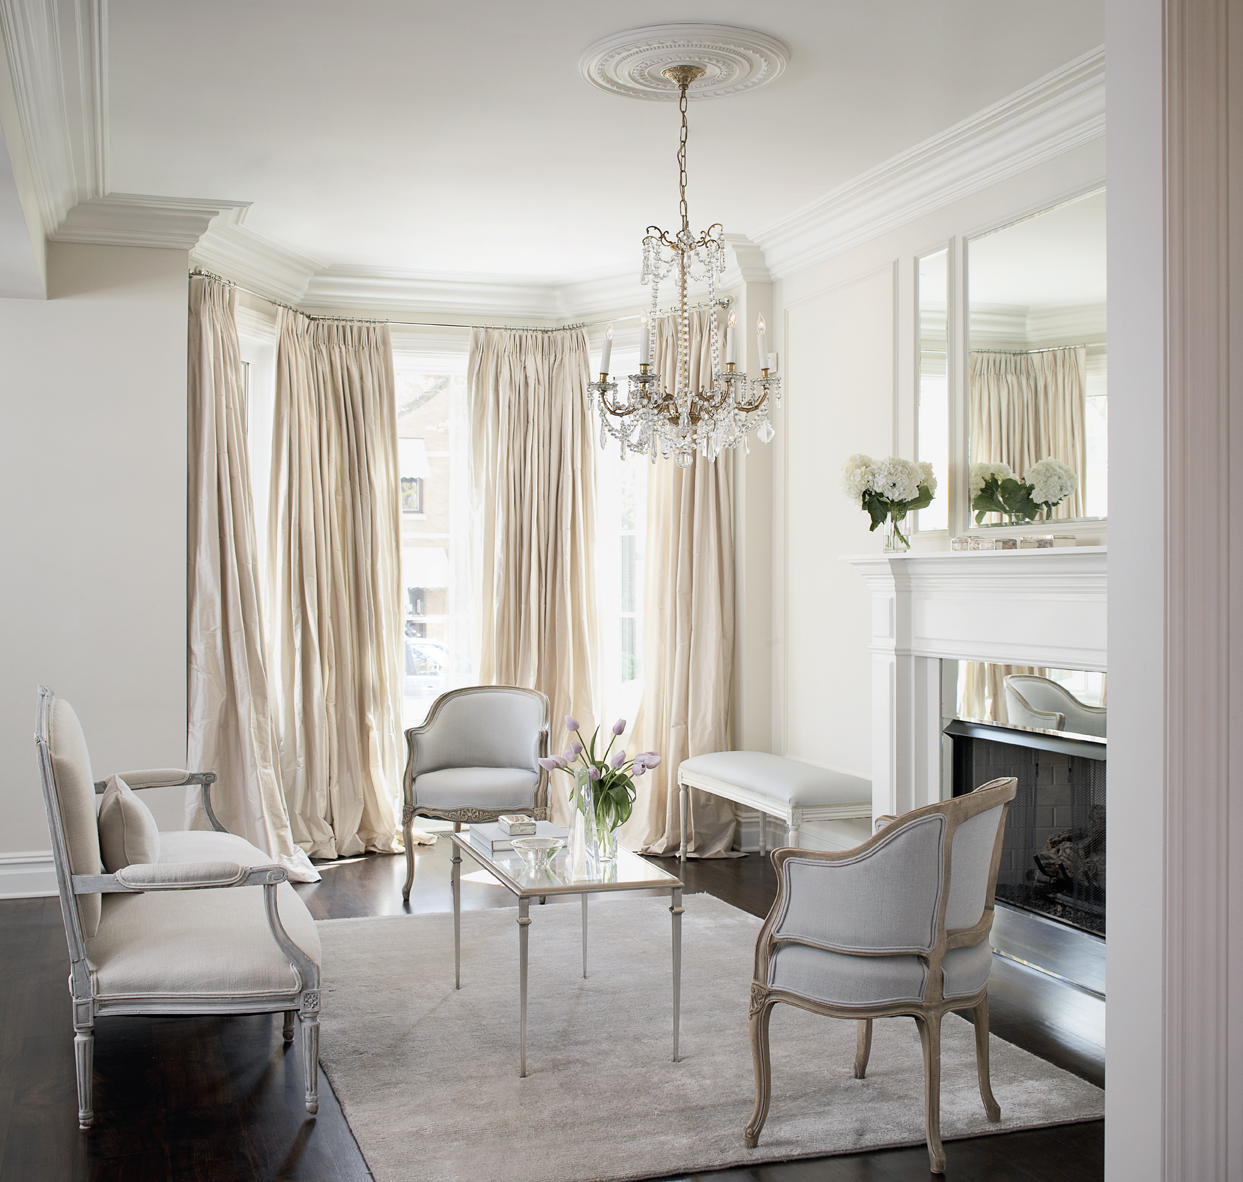 decor tips to style your home like a Parisian